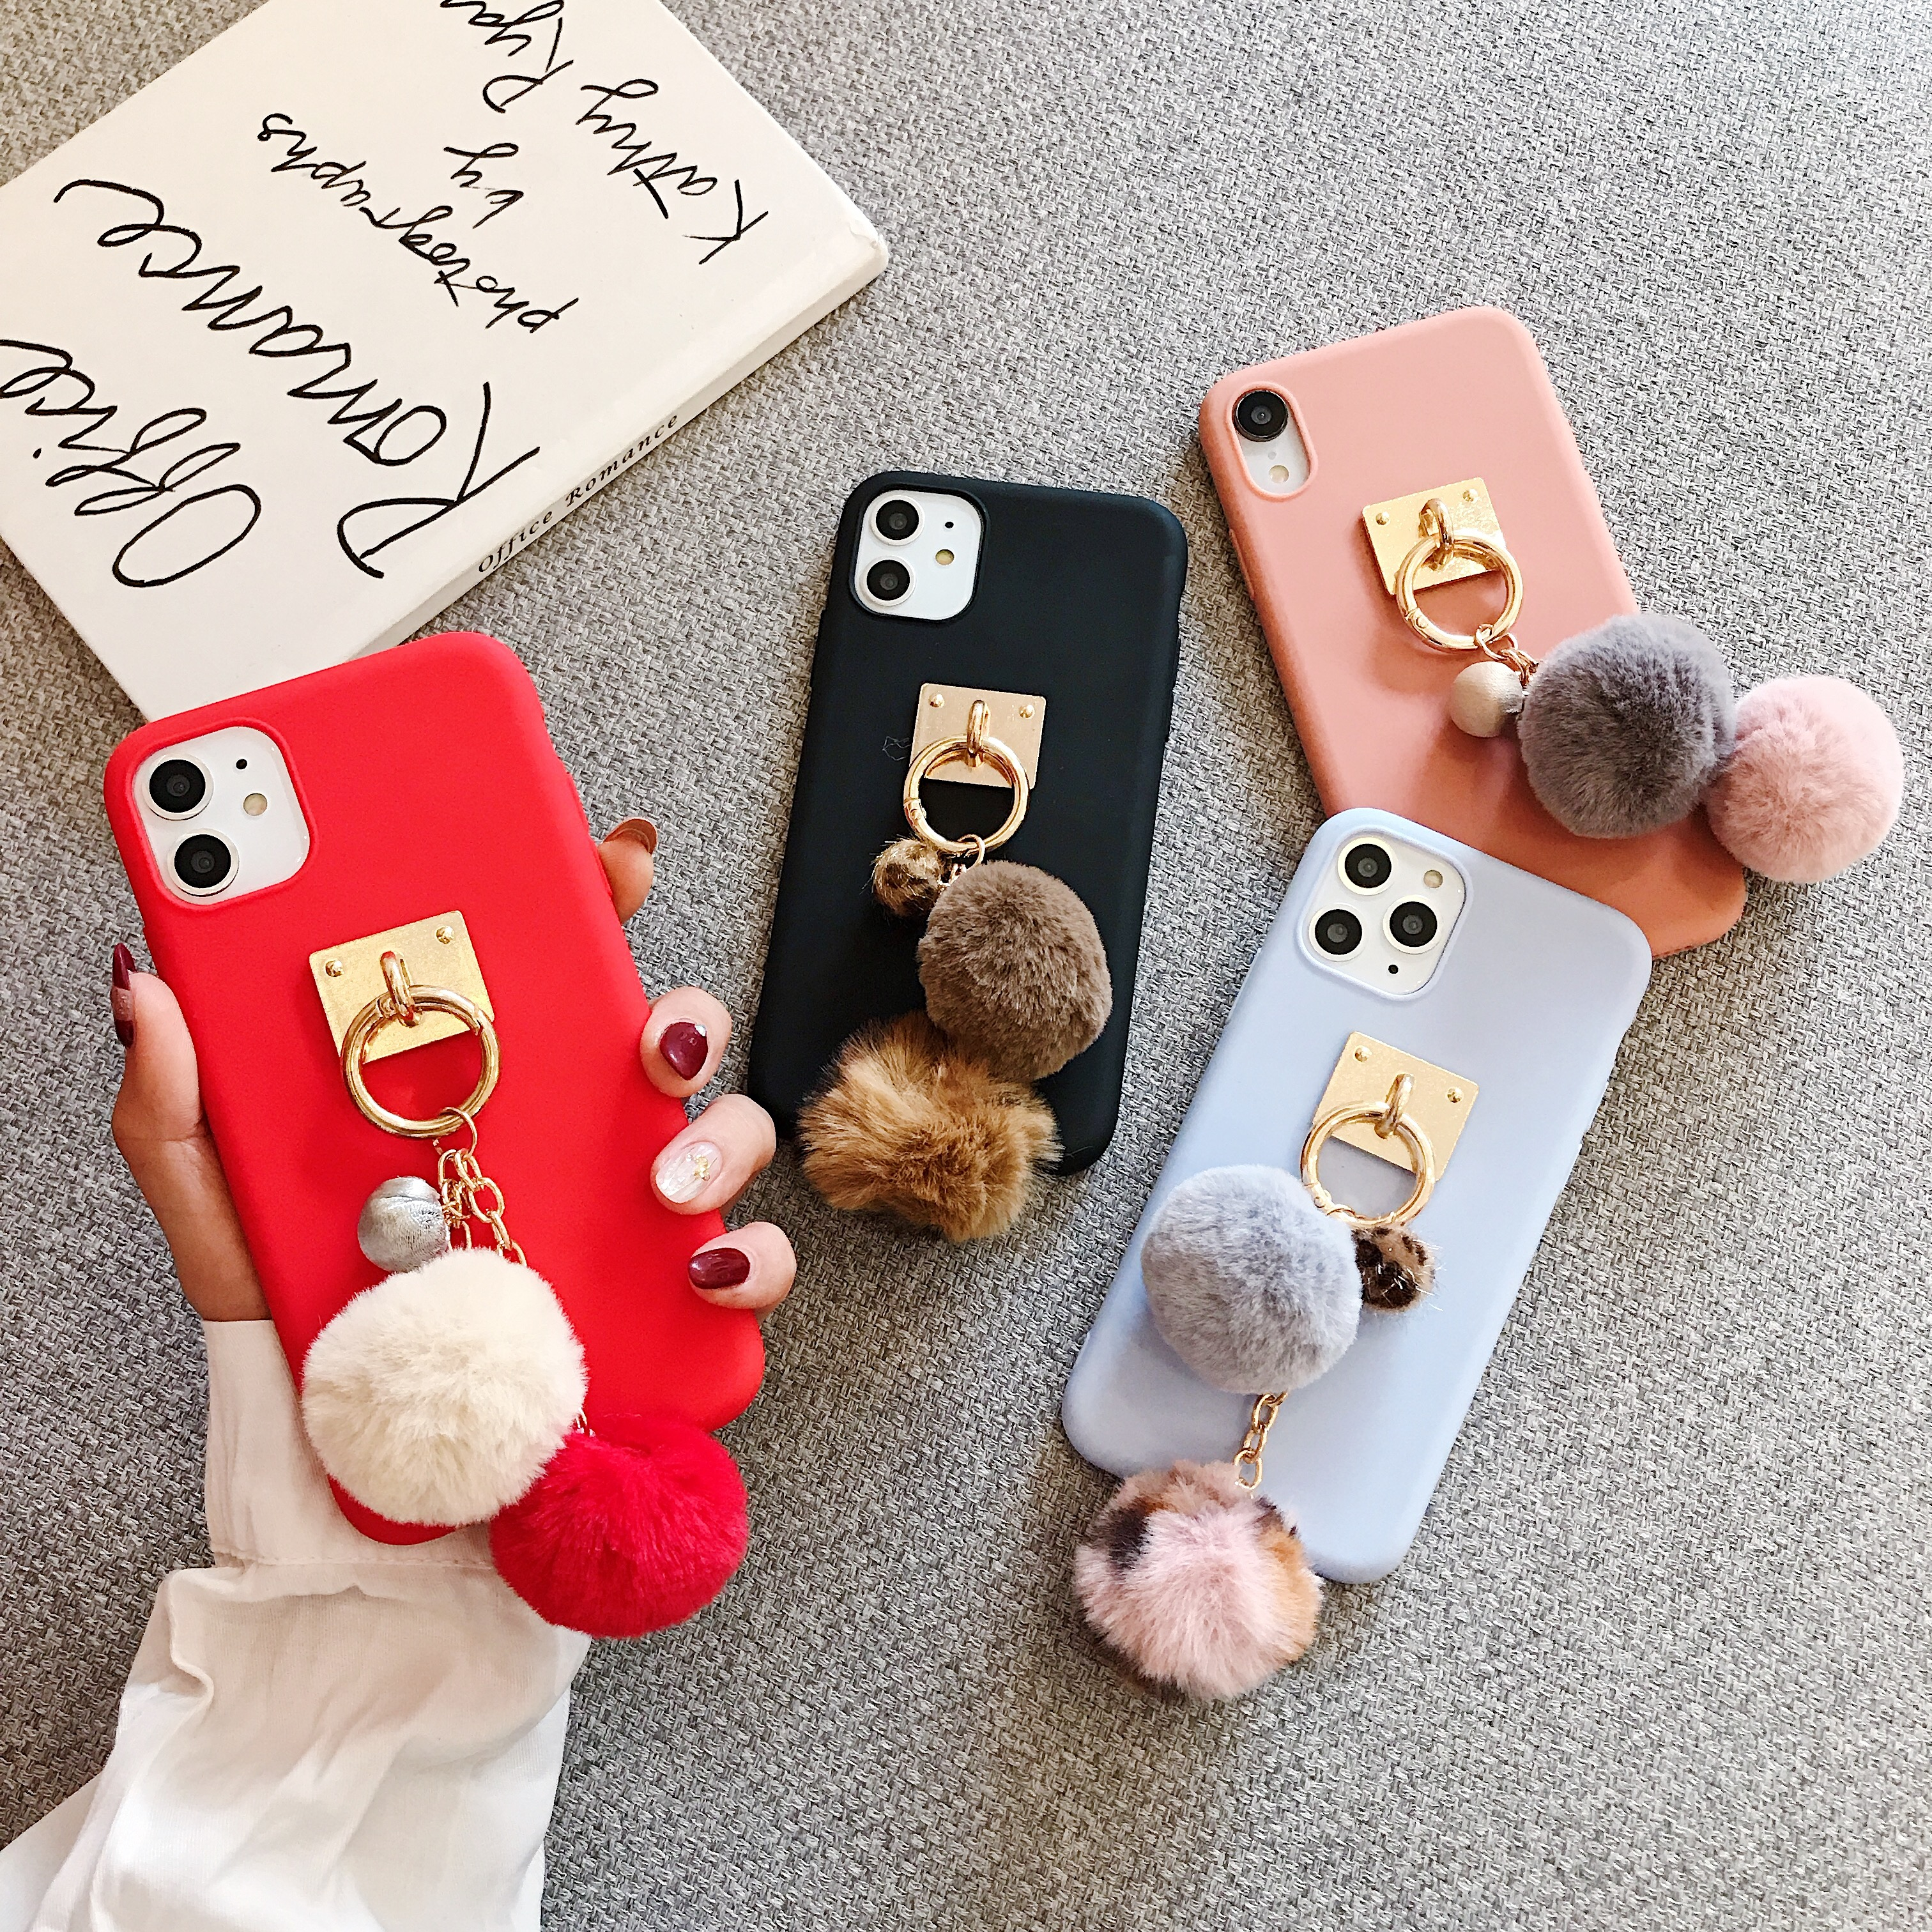 Case For One Plus 6T 7 Pro luxury Cute <font><b>3D</b></font> fox fur ball keychain soft For <font><b>Oneplus</b></font> 5 5T <font><b>6</b></font> 6T case cover image